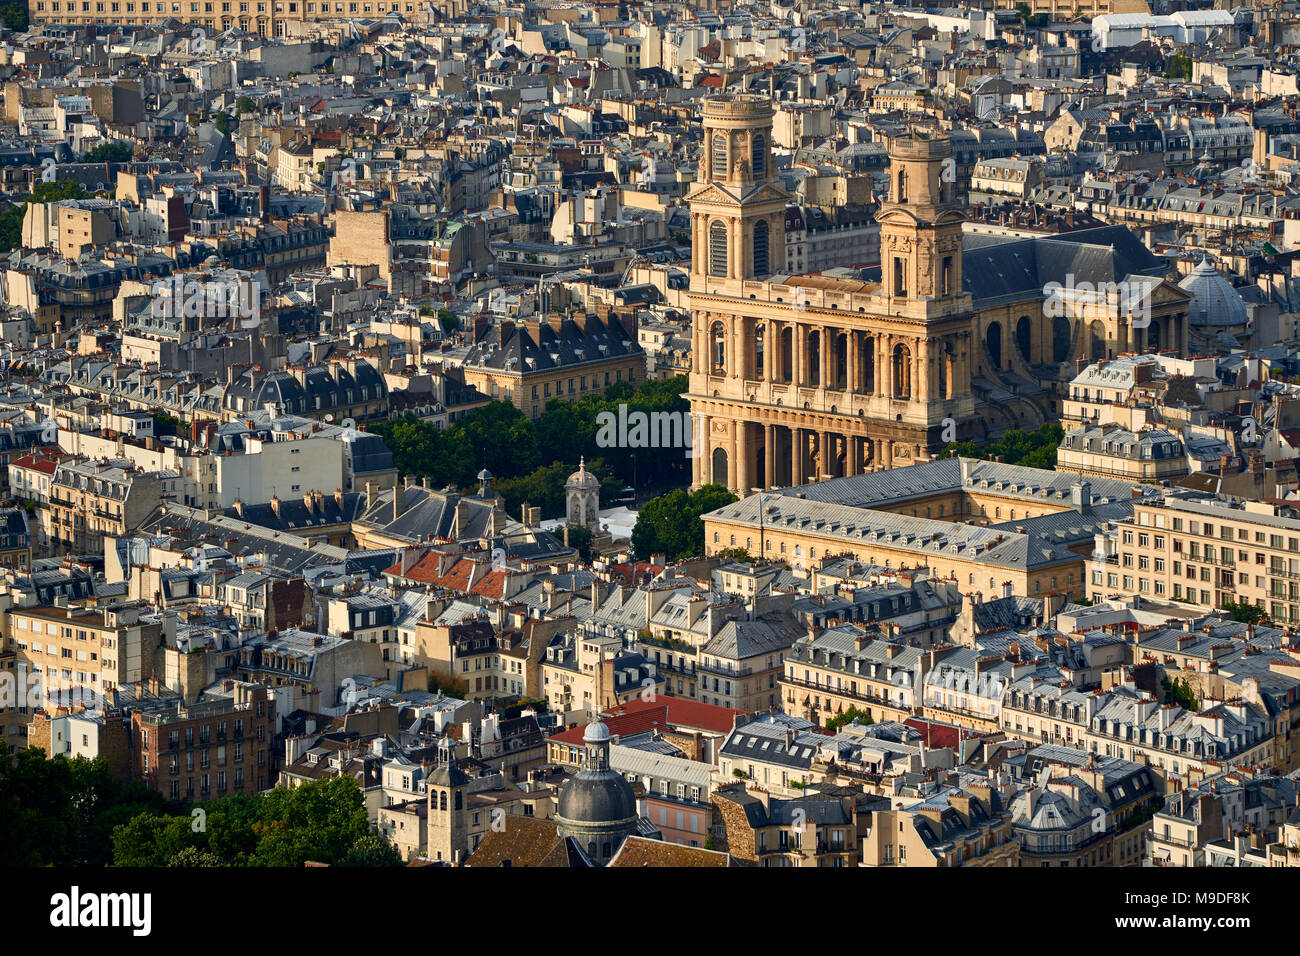 Aerial view on Saint-Sulpice Church and Paris rooftops at sunset (mansard and dormer roofs). 6th Arrondissment, Paris, France Stock Photo